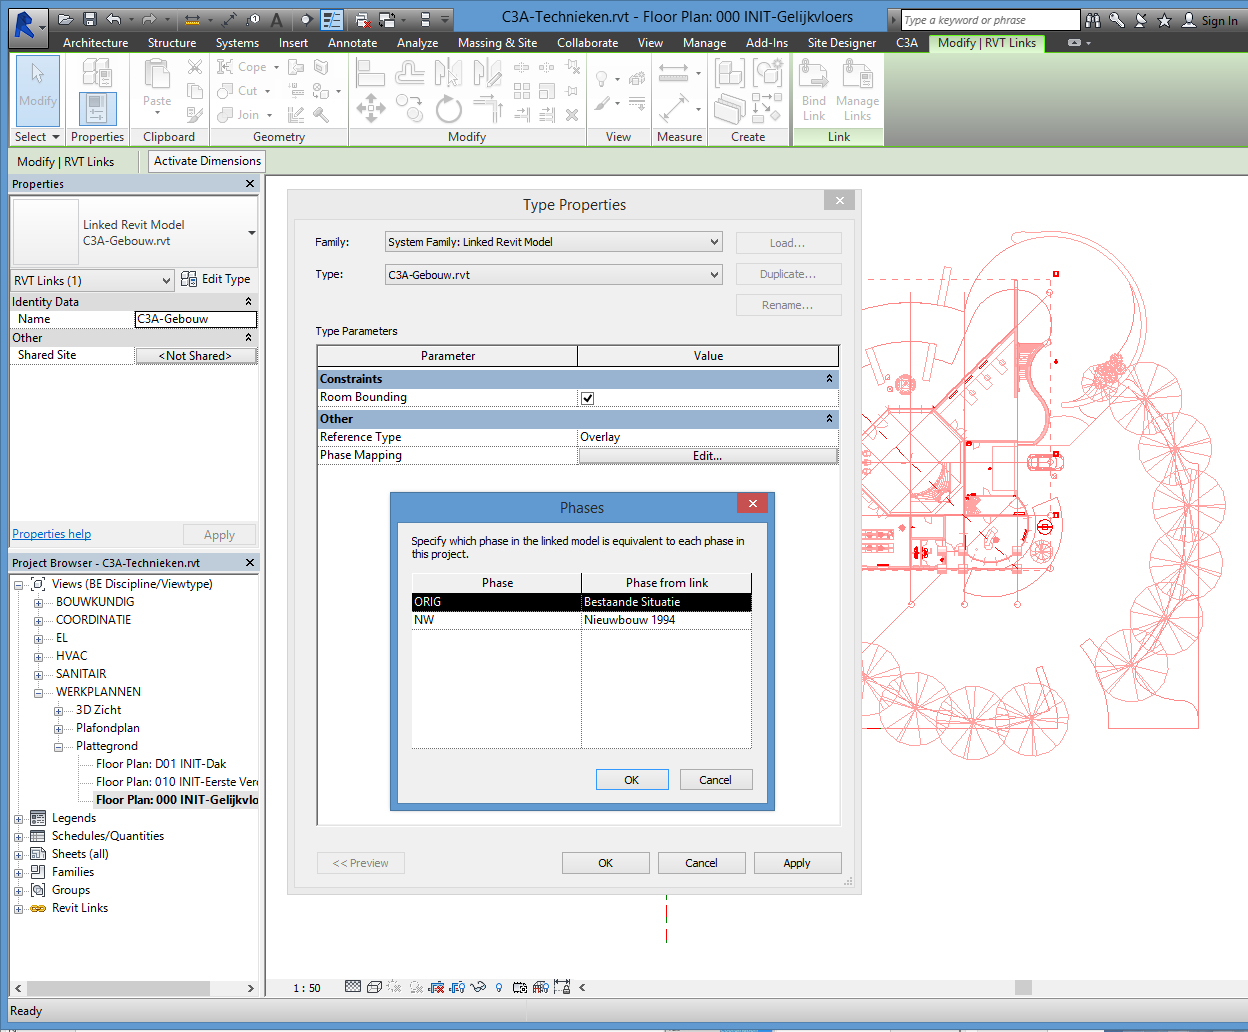 blad 18 REVIT Multidiciplinair Samenwerken C3A-Witas Workshop 18 mrt 2015 3.